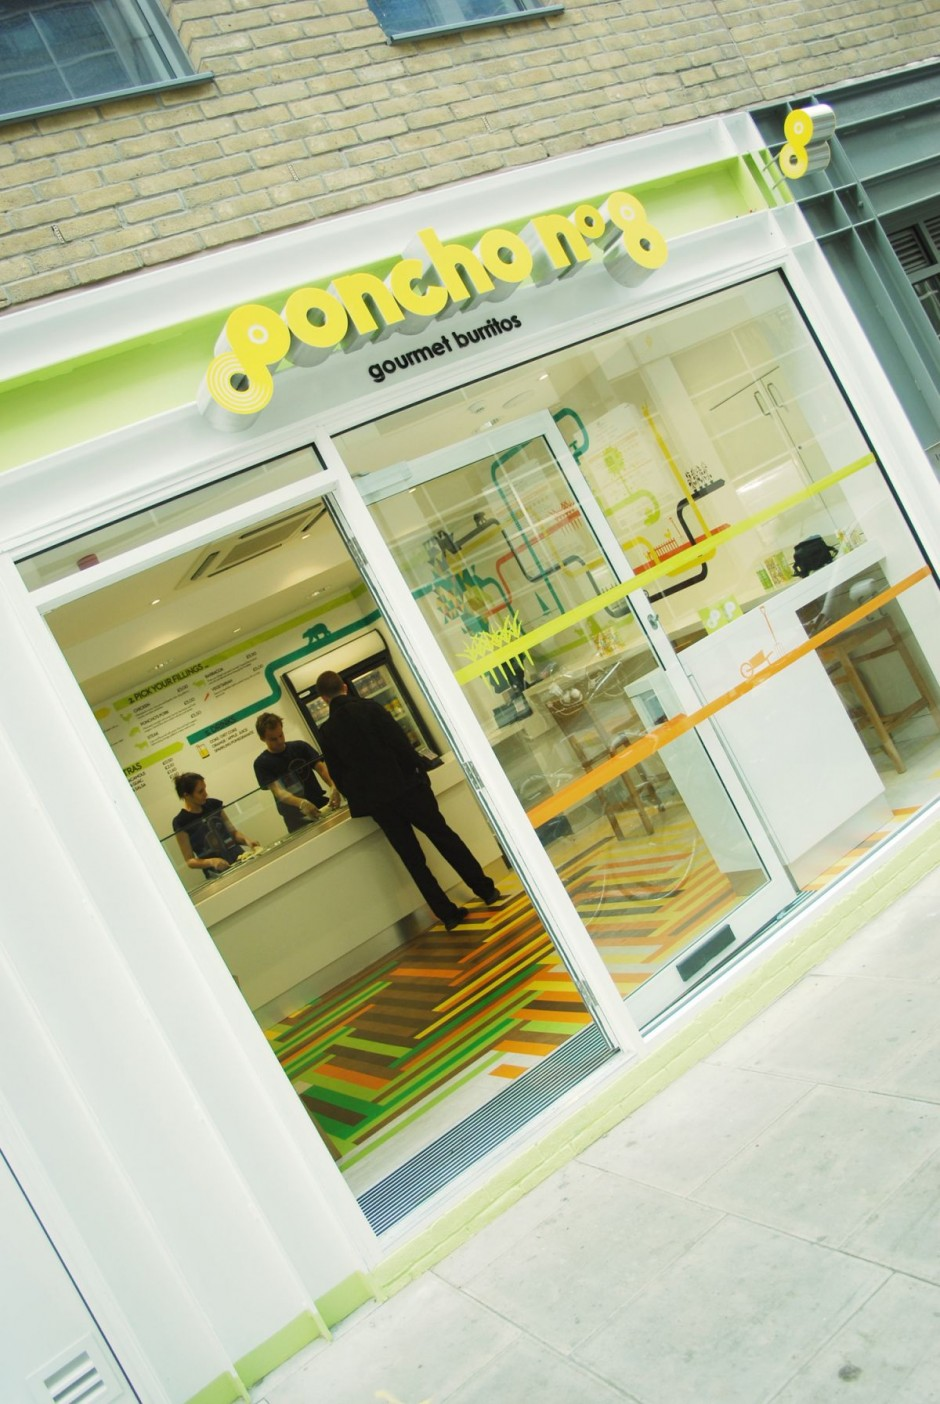 Poncho no 8 is a mexican food restaurant popular for its burritos it is located in a busy london street and is done by the native london design studio